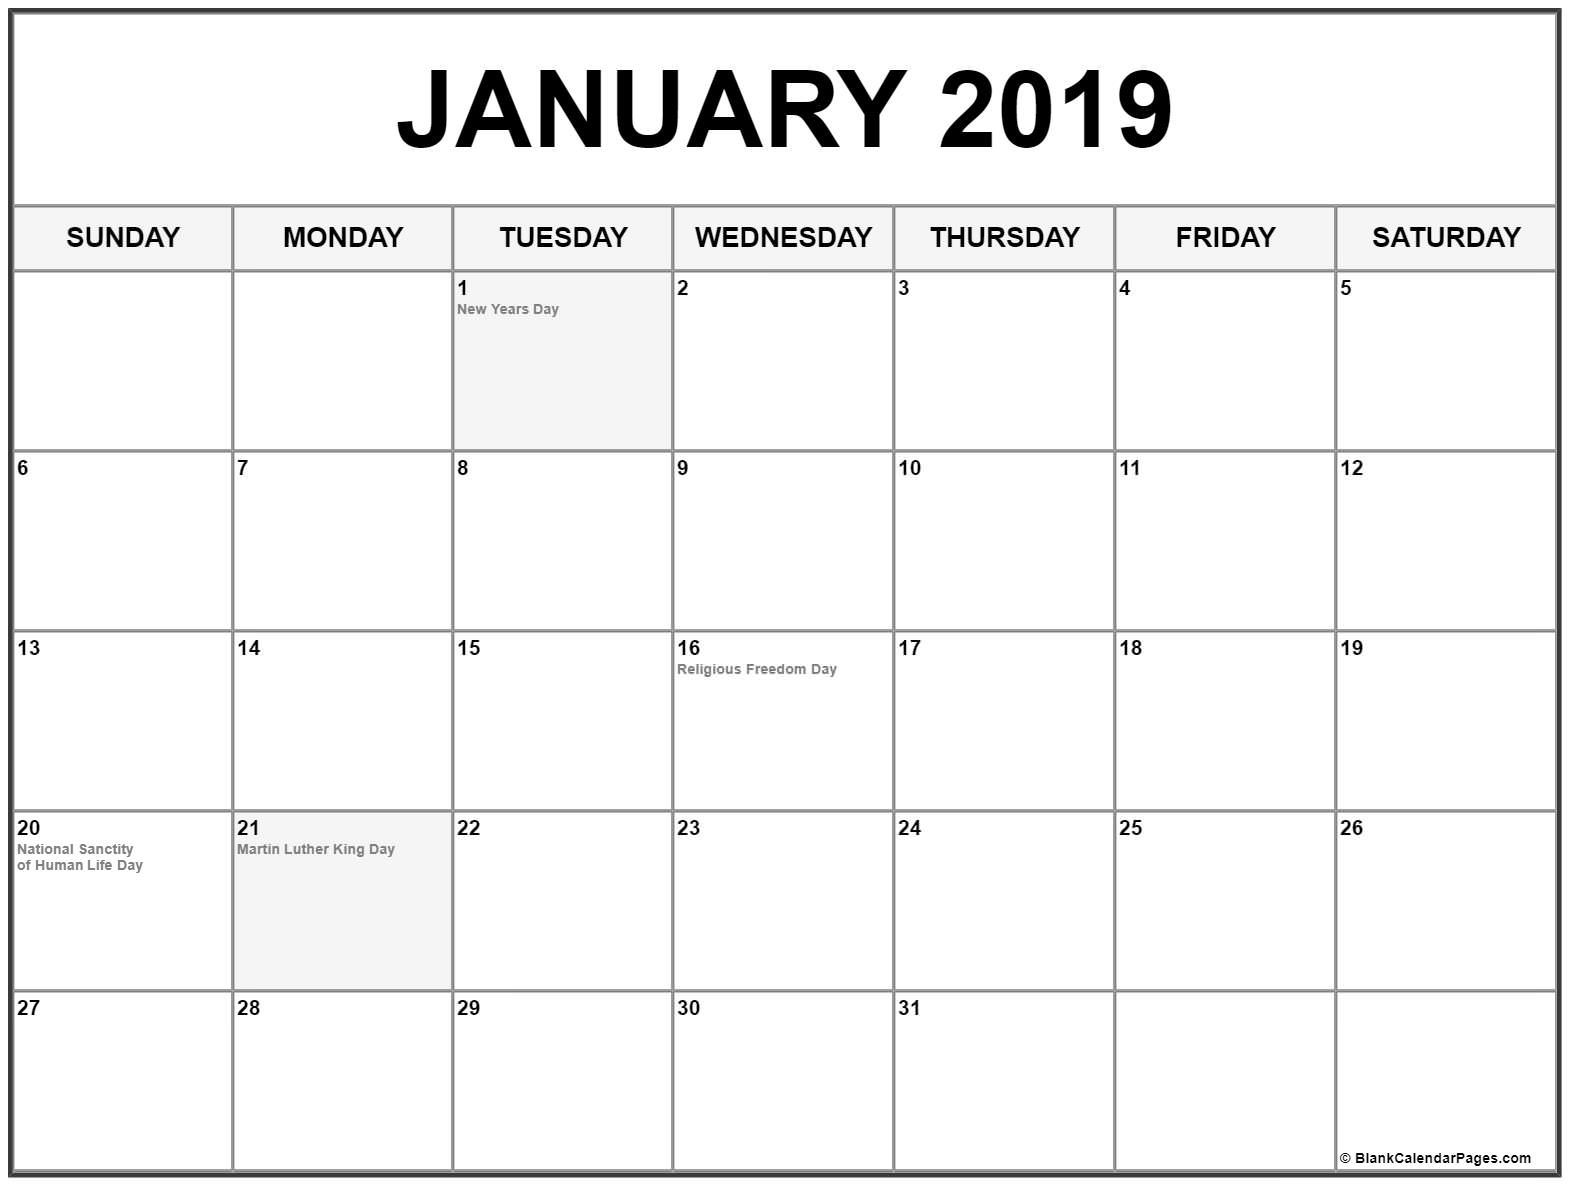 January 2019 Calendar With Holidays Calendar Printables January